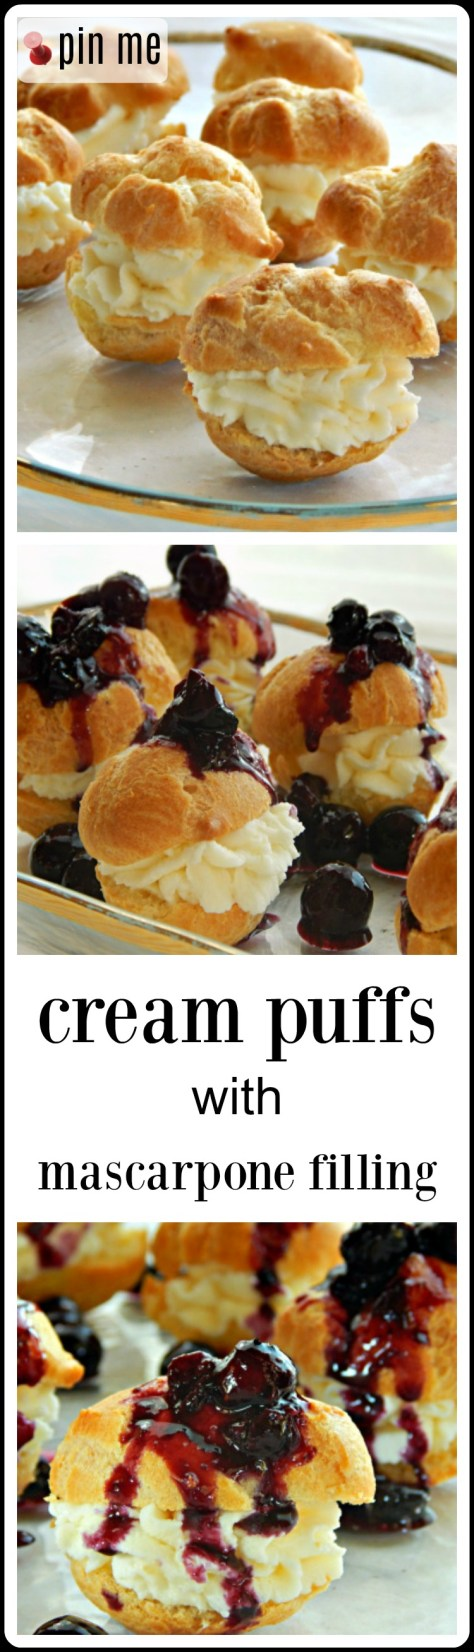 Cream Puffs (profiteroles) with a Mascarpone filling and Blueberry topping or maybe you'd rather have them topped with another fruit or chocolate or caramel?